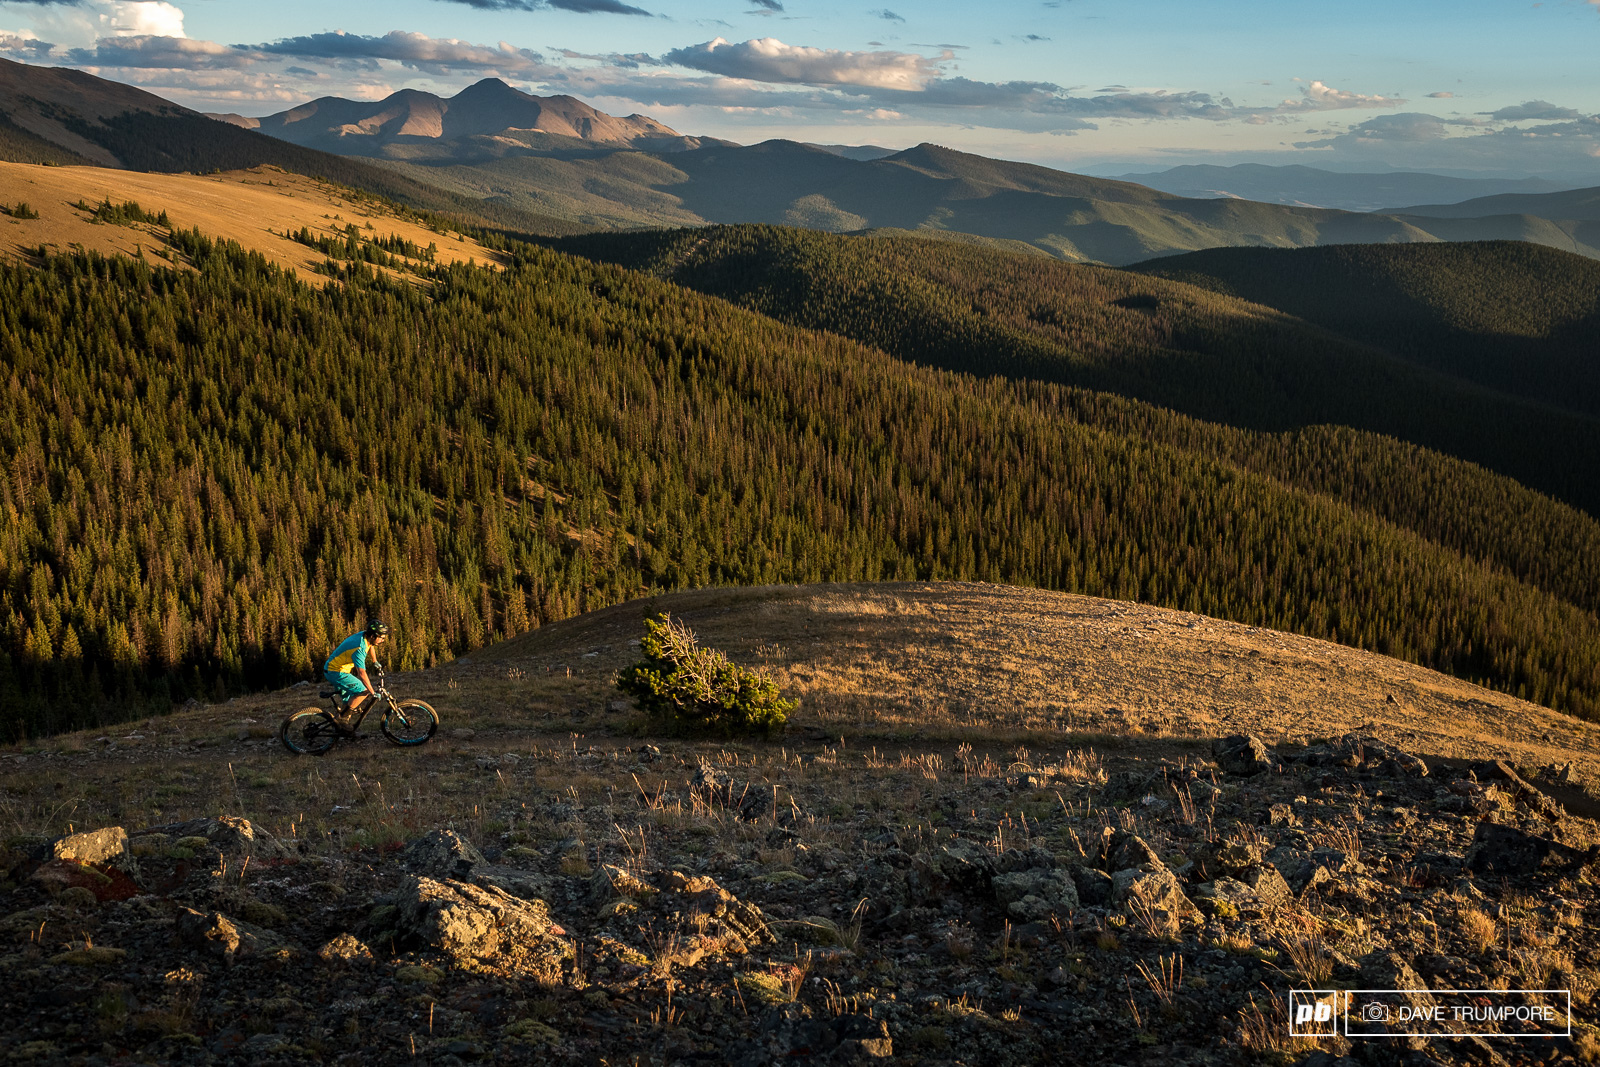 Shawn Neer crests the top of the climb and enjoys the warm but brief ray of sunshine.